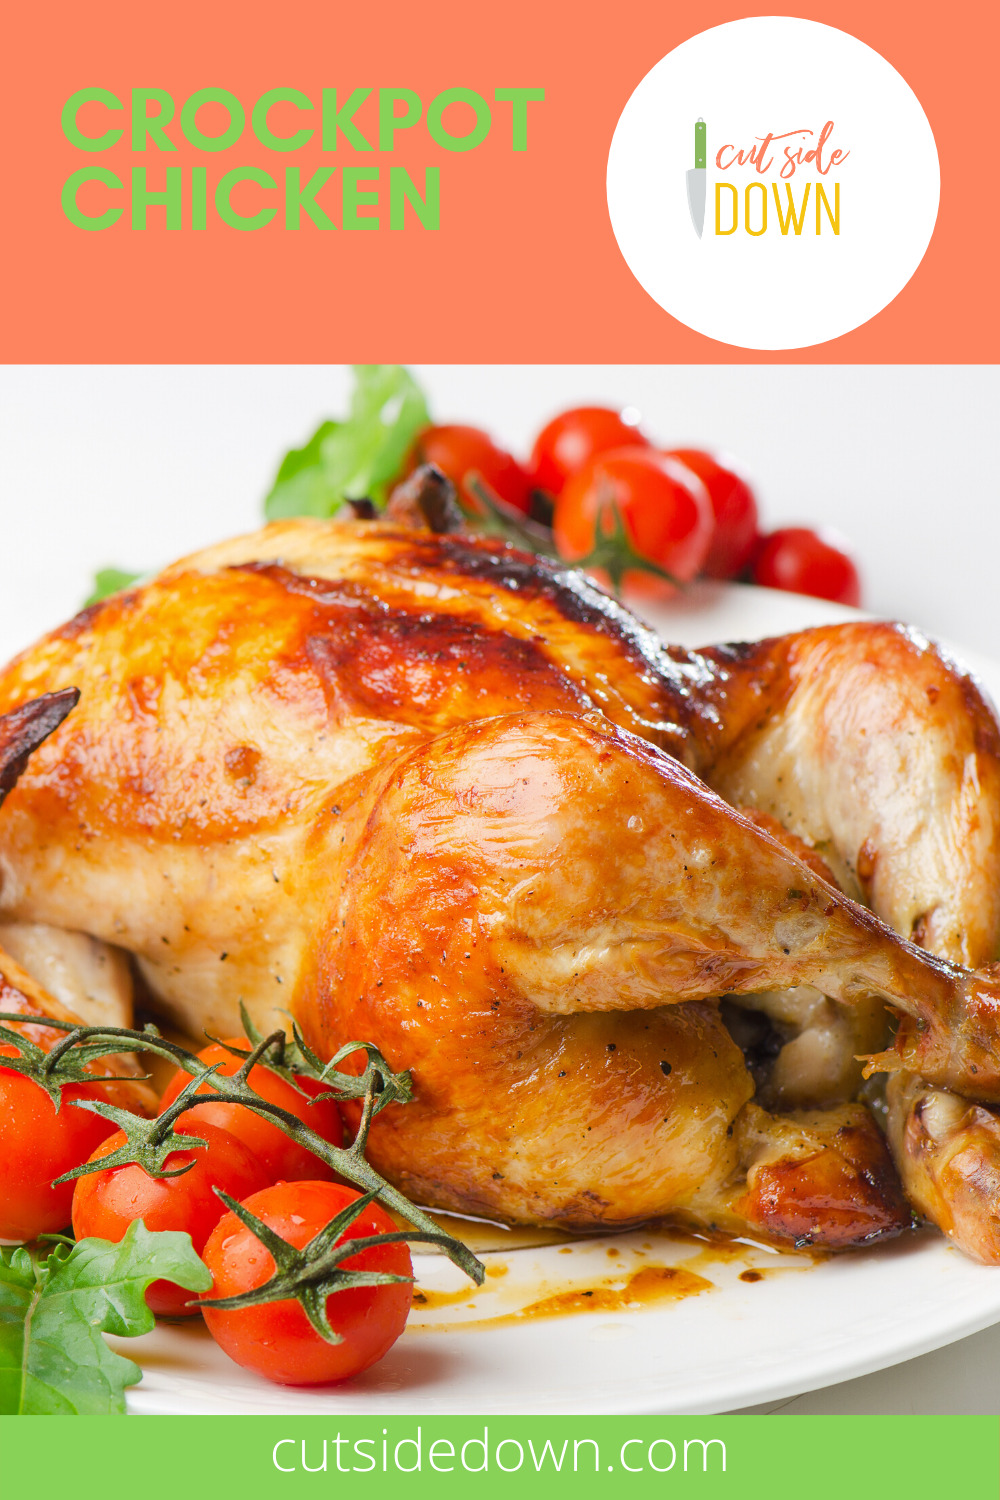 If you love chicken, this recipe can't be beat. Besides being unbelievably tasty, its deliciously easy. Simply put it in the crockpot and go. What could be better? Read the post for the recipe. Enjoy! #crockpotchickenrecipe #slowcookerrecipes #easychickenrecipes